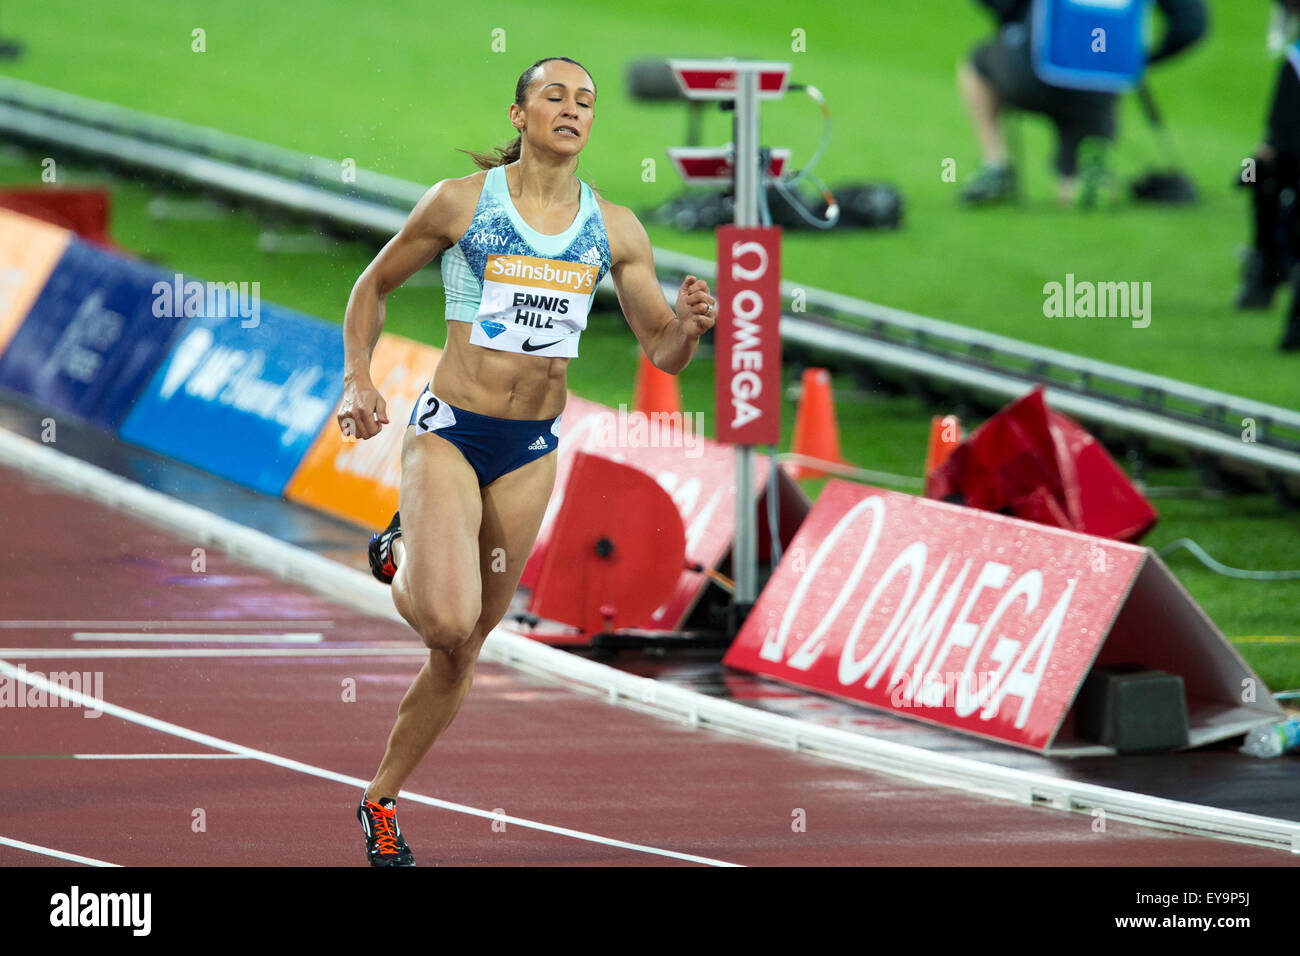 Londres, Royaume-Uni. 24 juillet, 2015. Jessica ENNIS-HILL, Women's 100m haies, Diamond League jeux anniversaire Photo Stock